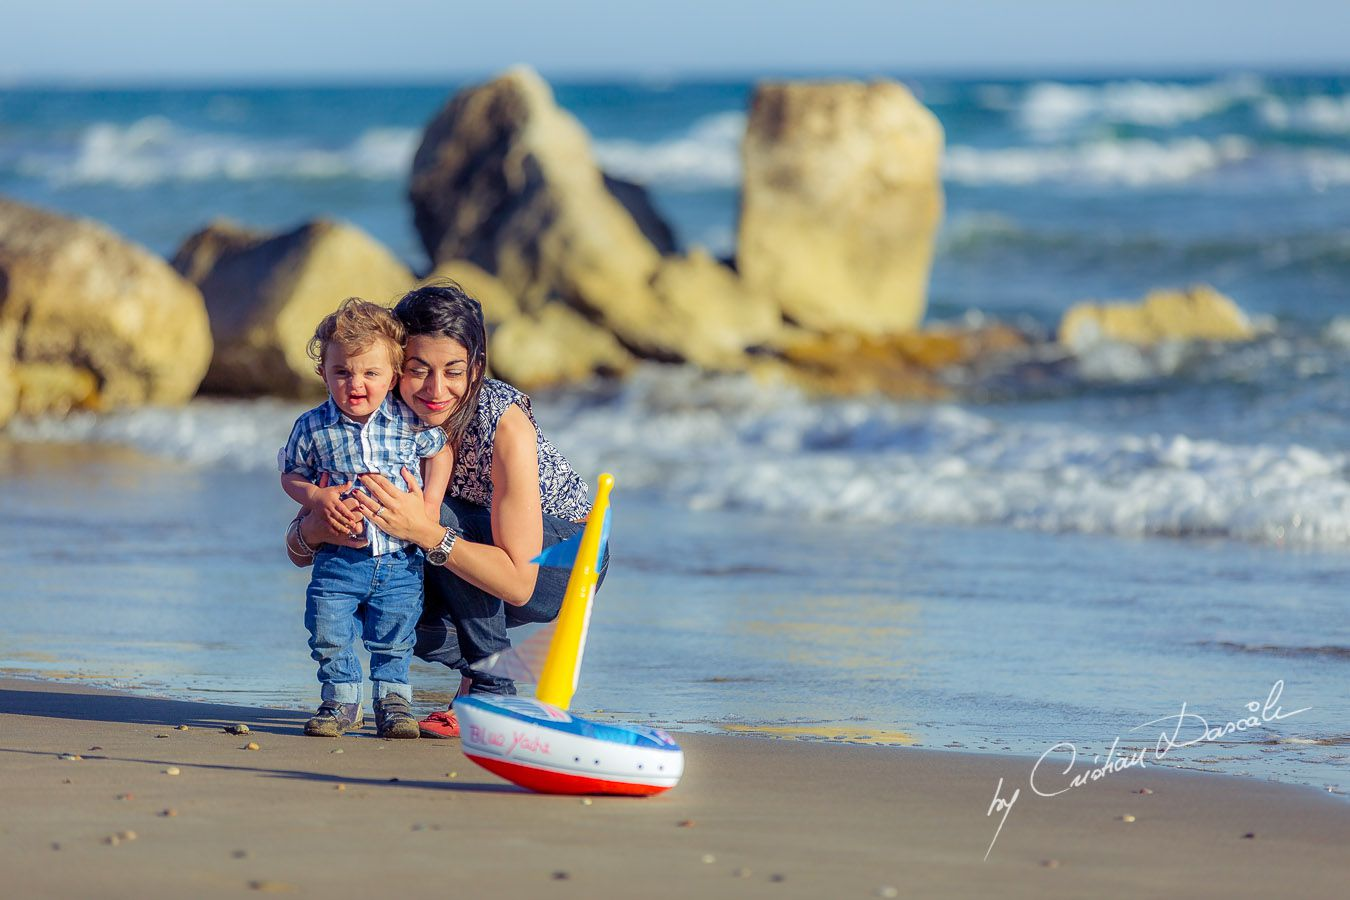 Precious moments: Maria & little Harry at Curium Beach, Cyprus. Photographer: Cristian Dascalu